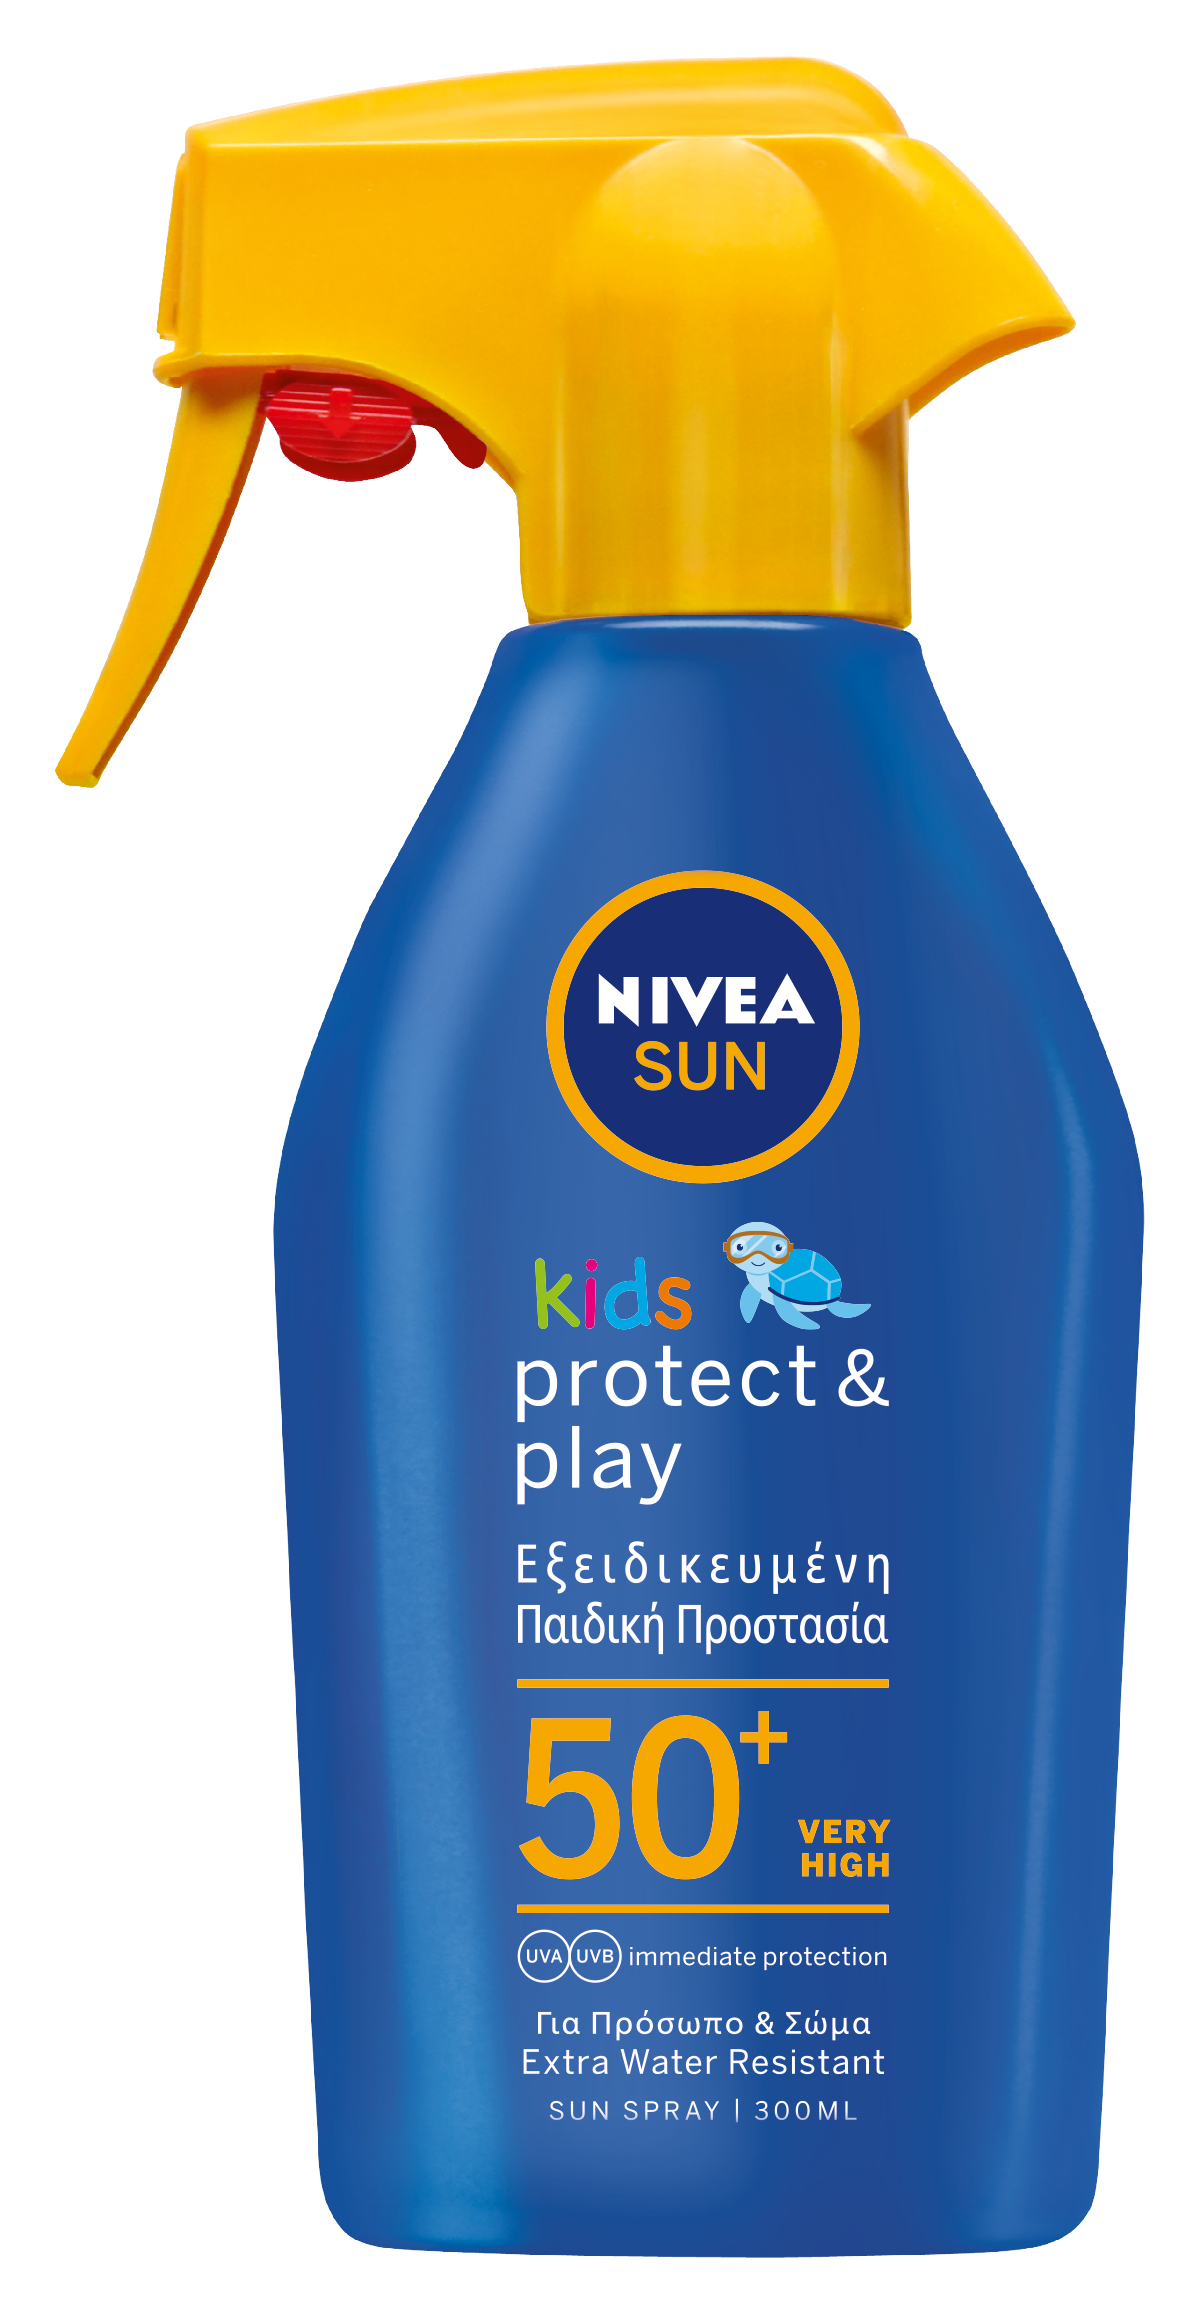 Nivea Sun Kids Triggle Spray SPF50+ 300ml